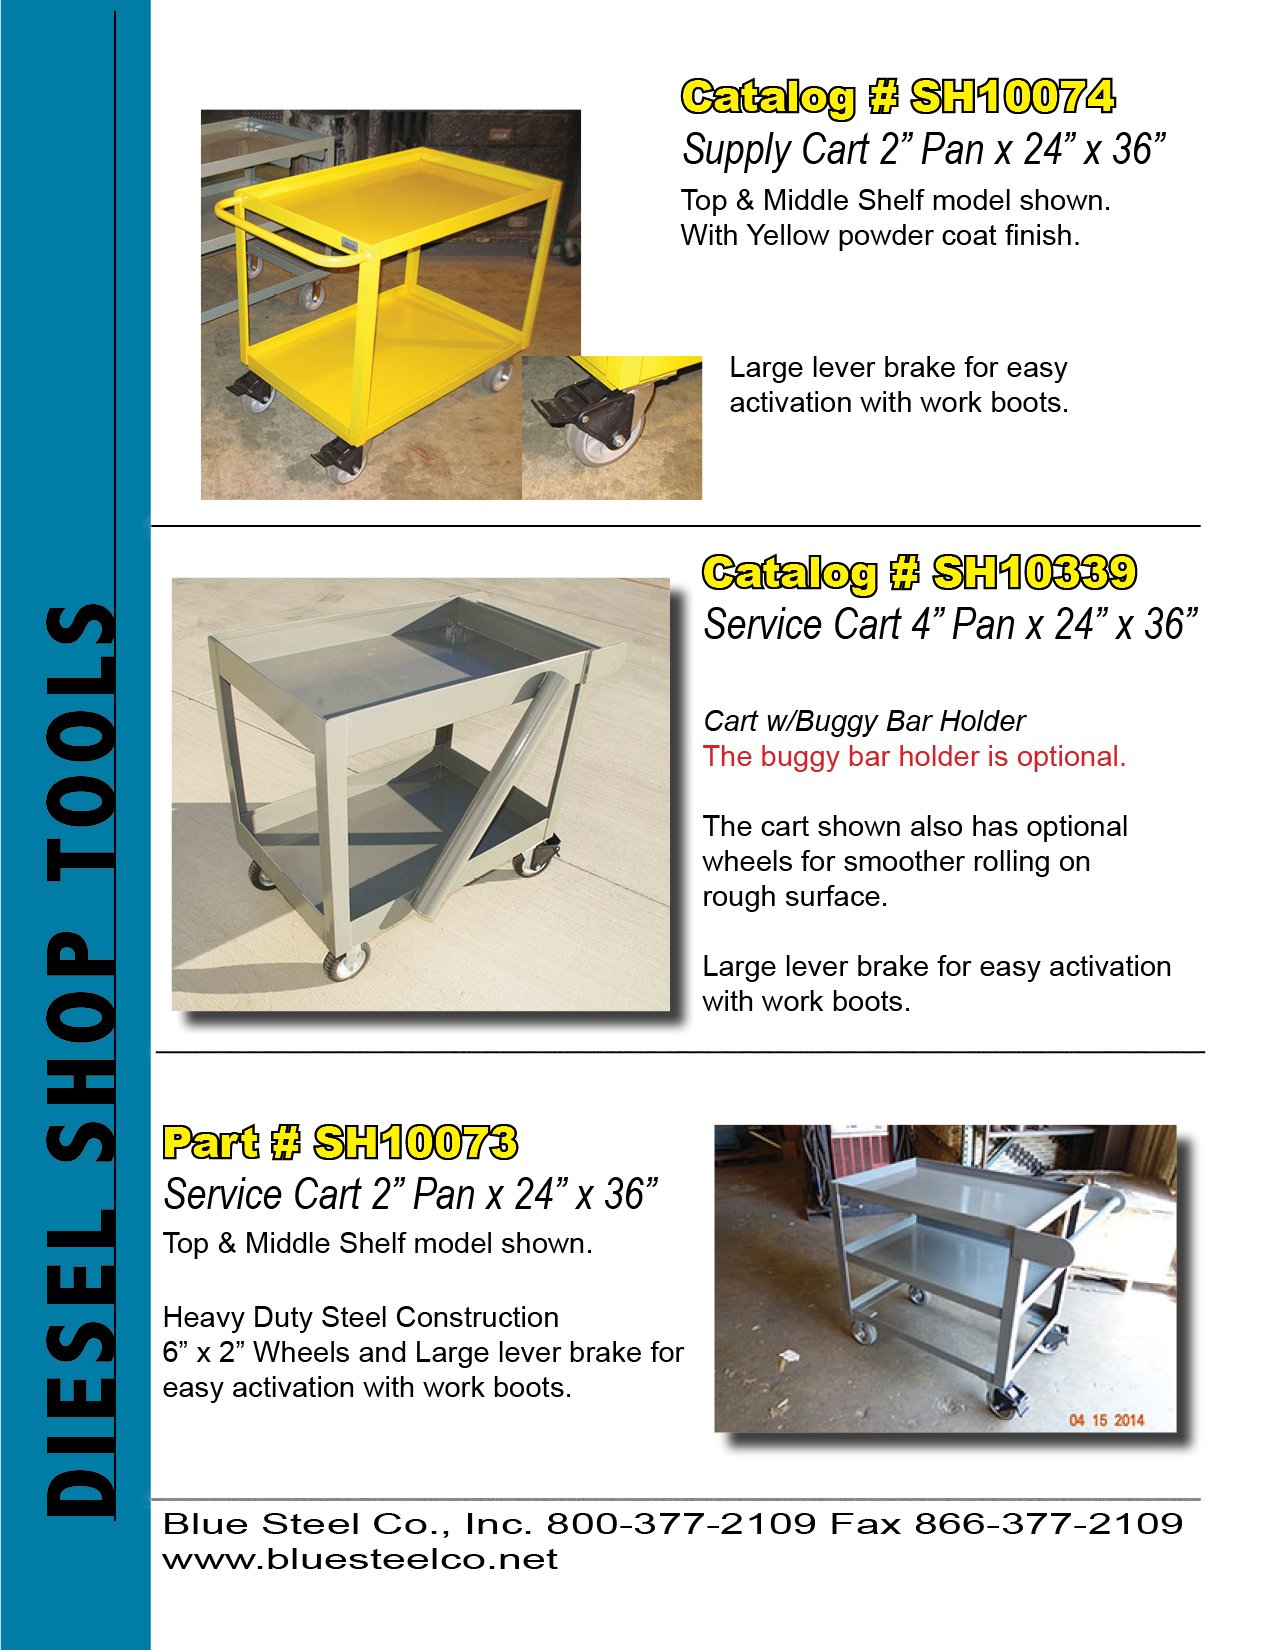 Service Carts and Supply Carts